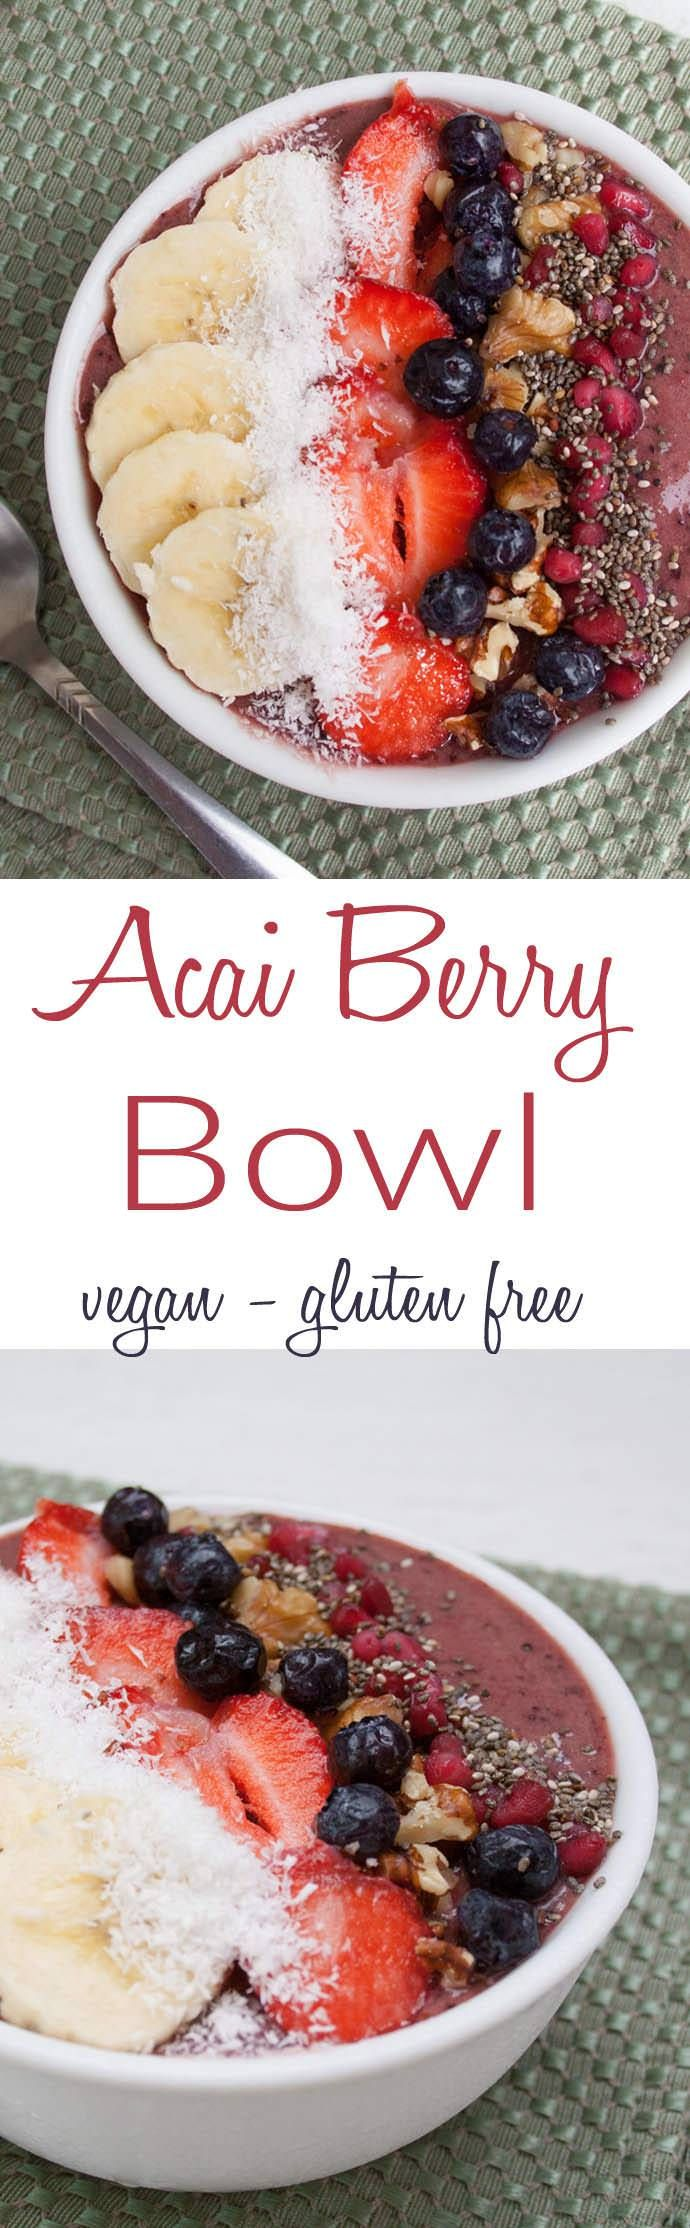 Acai Berry Bowl (vegan, gluten free) - This smoothie bowl feels like you are eating dessert, but it is really healthy! Since it can be made in minutes, it is perfect for weekdays!